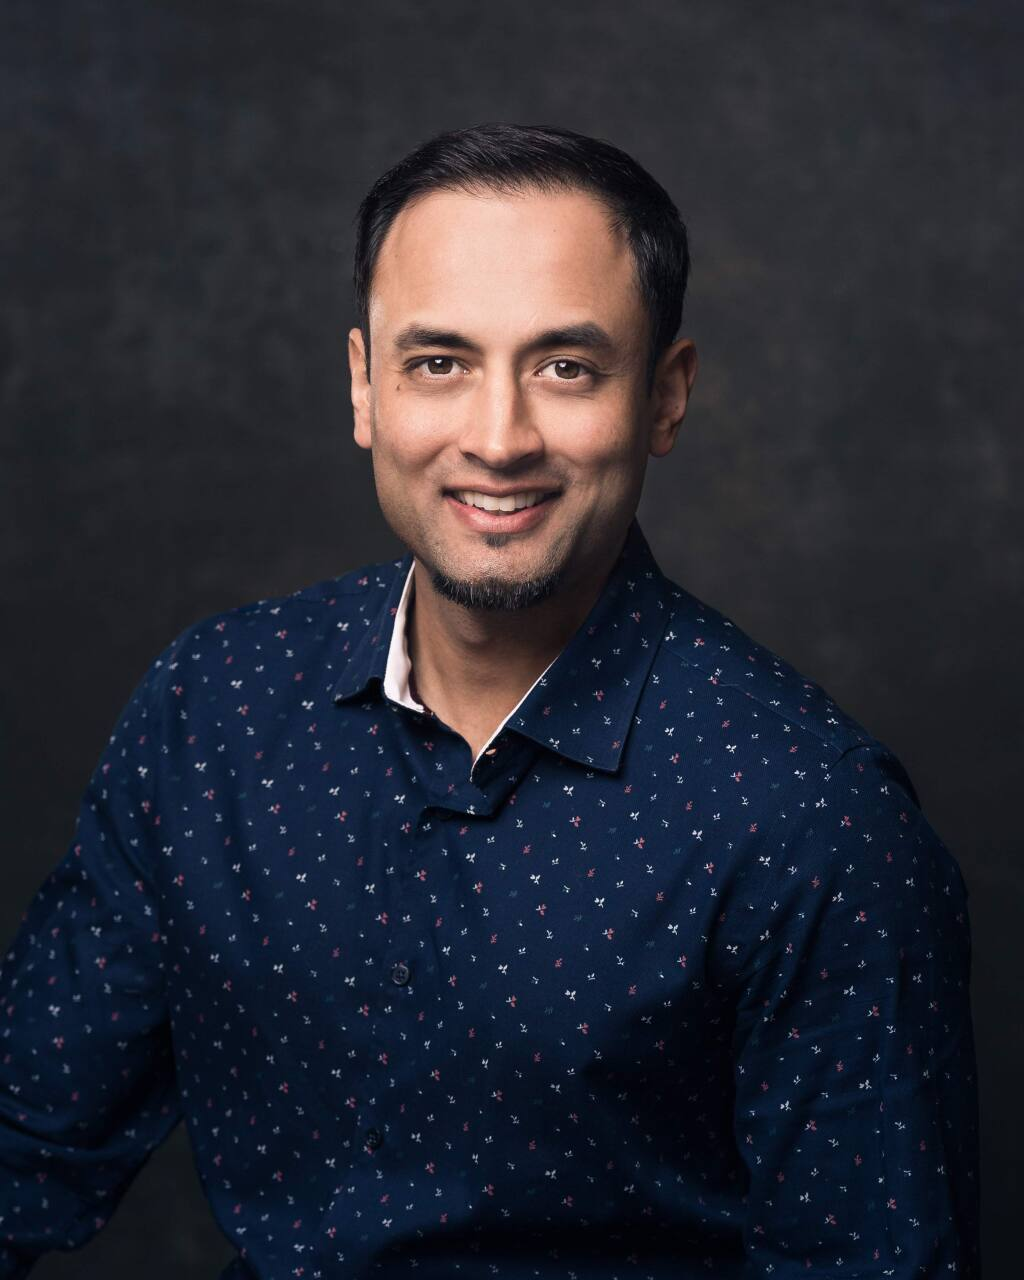 Ashish Patel, 37, owner of Olea Hotel in Glen Ellen in Sonoma Valley, is one of North Bay Business Journal's Forty Under 40 notable young professionals for 2019. (PROVIDED PHOTO)